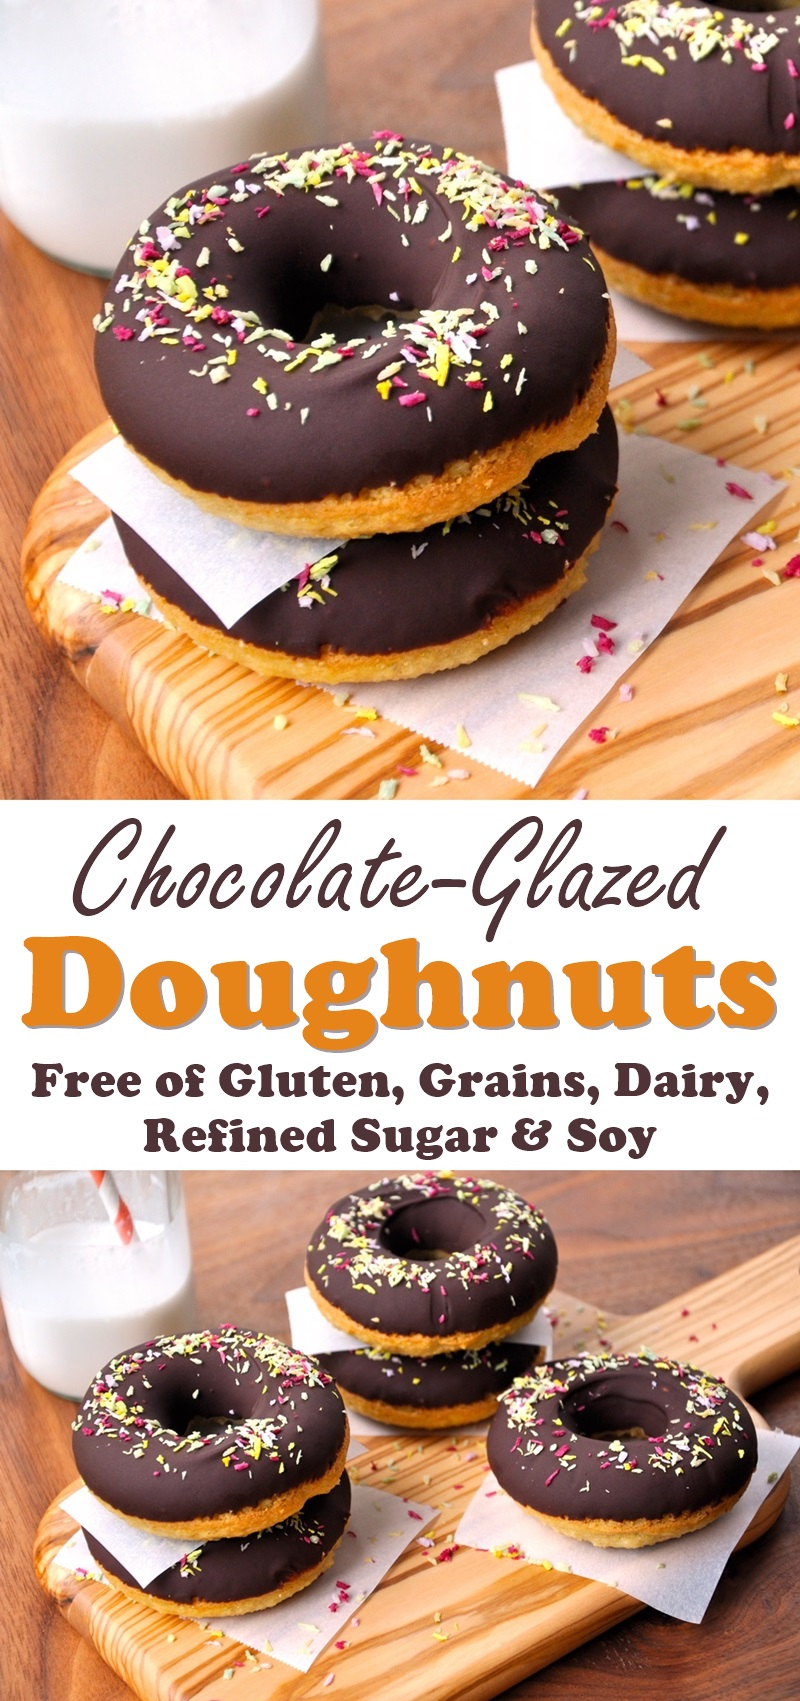 Chocolate-Glazed Doughnuts Recipe from The Recipe Hacker Confidential - Gluten-free, Dairy-free and Paleo!